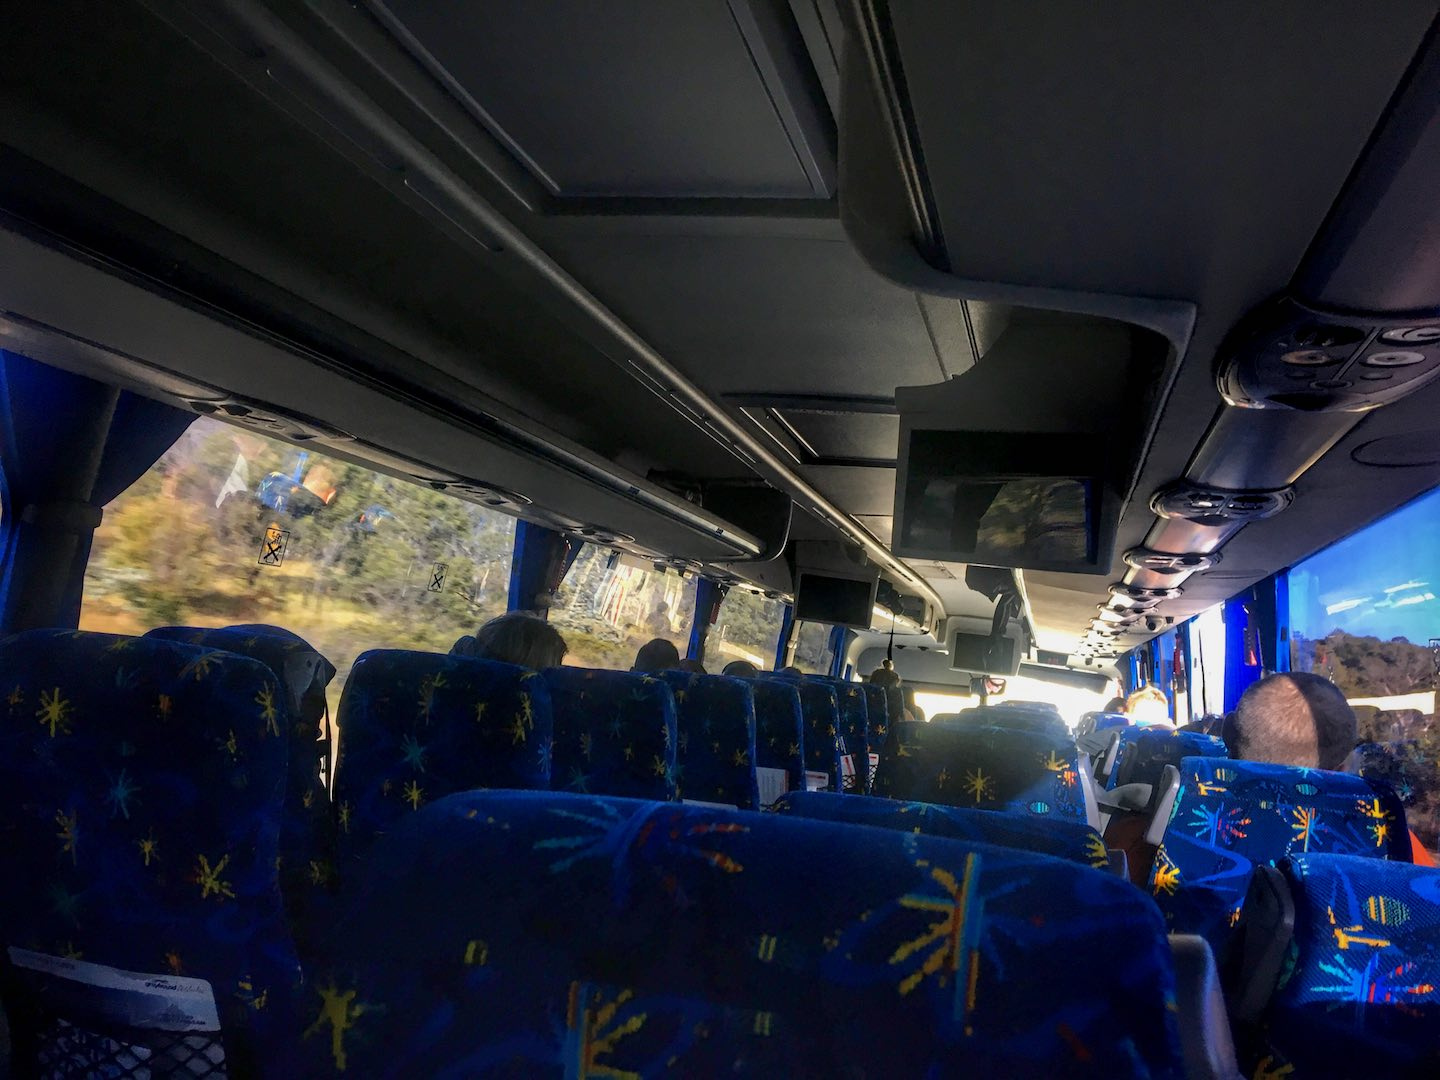 Image of the inside of a Greyhound Australia bus